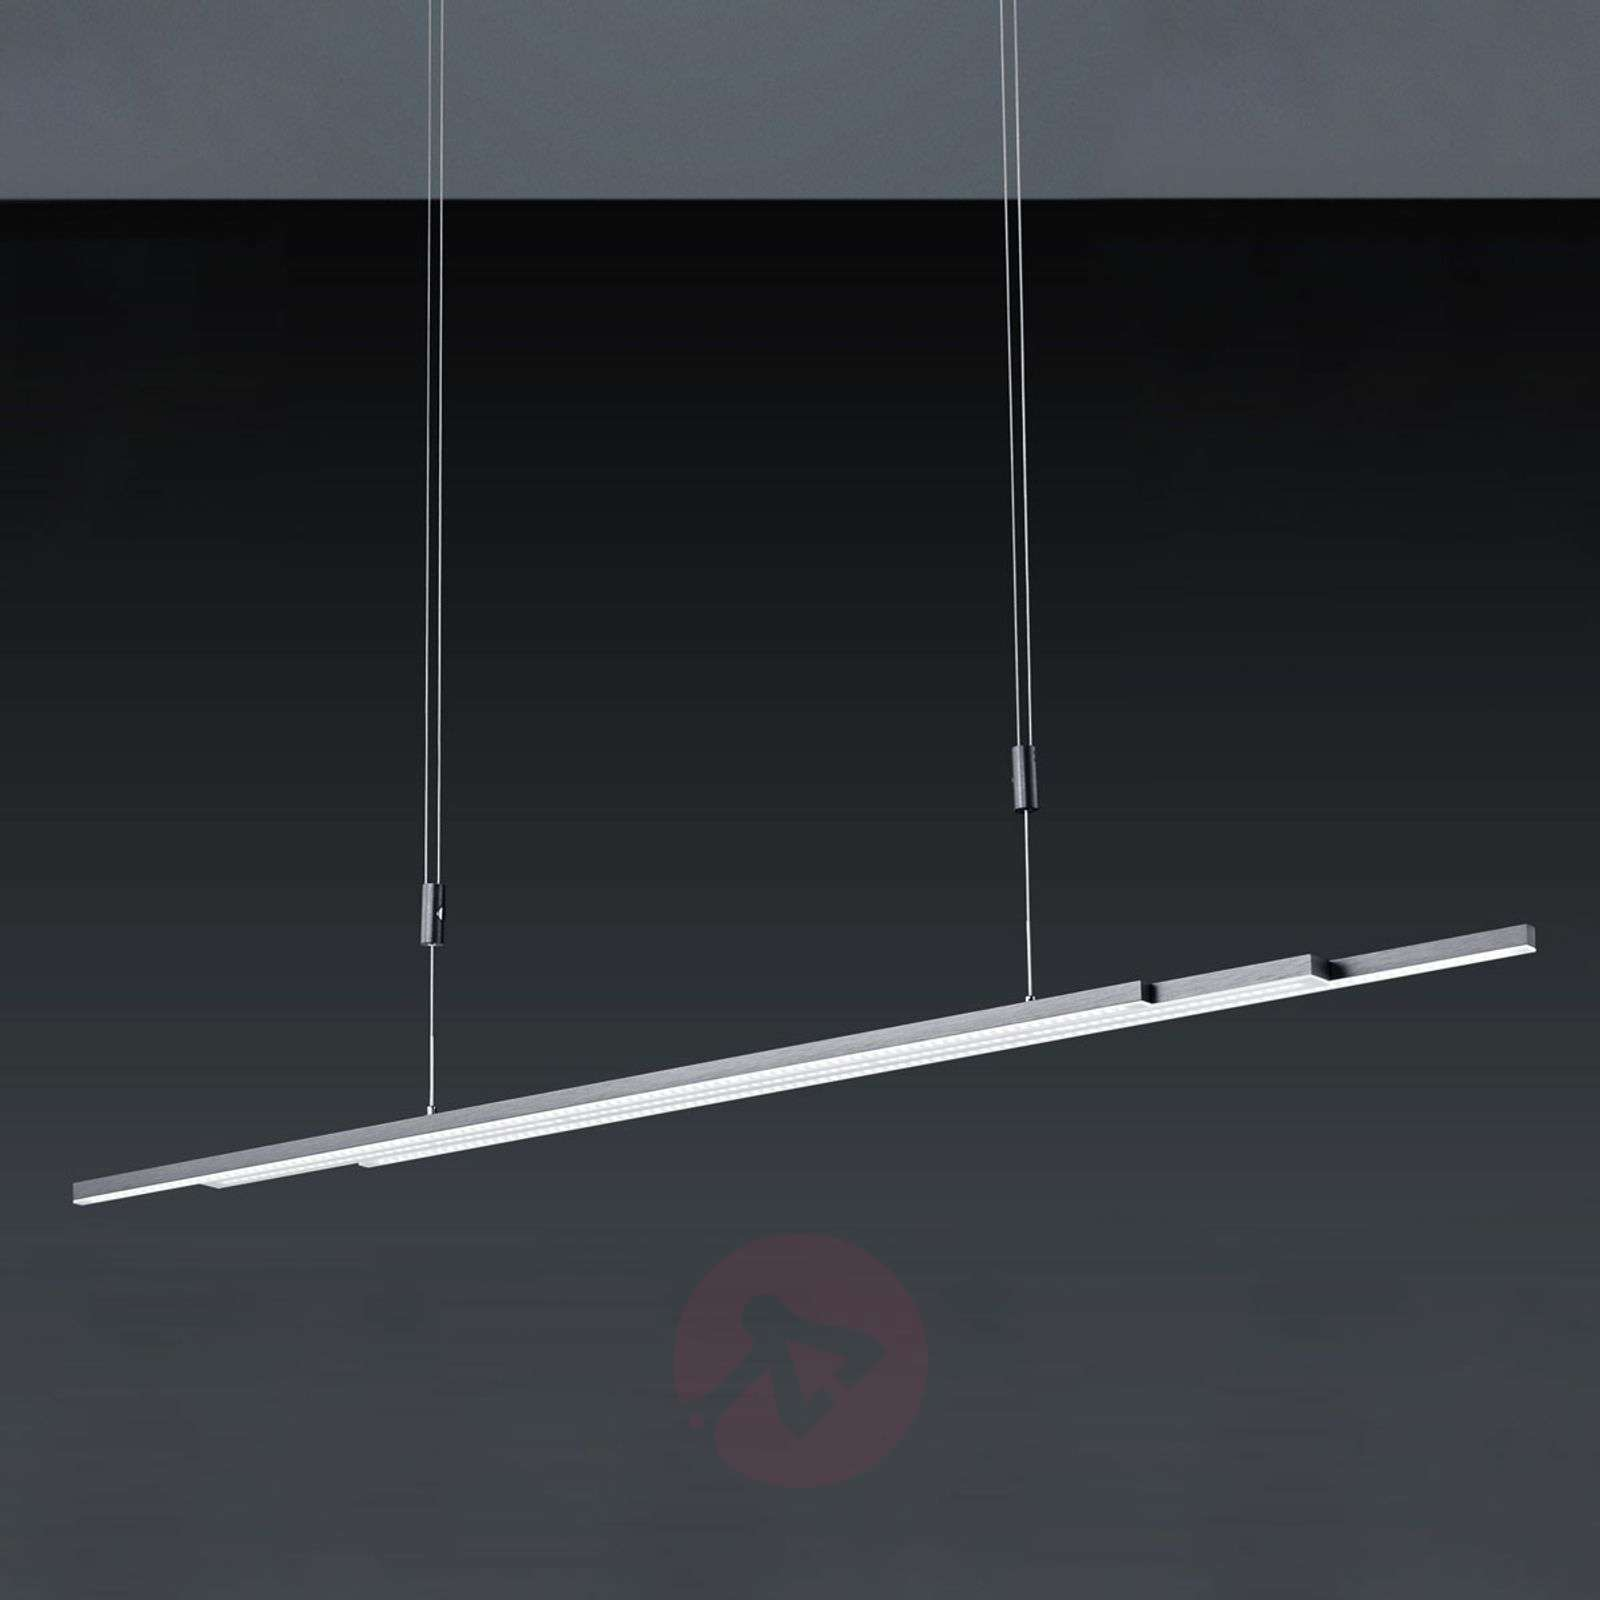 BANKAMP L-lightLINE lámpara colgante LED-1572013X-01